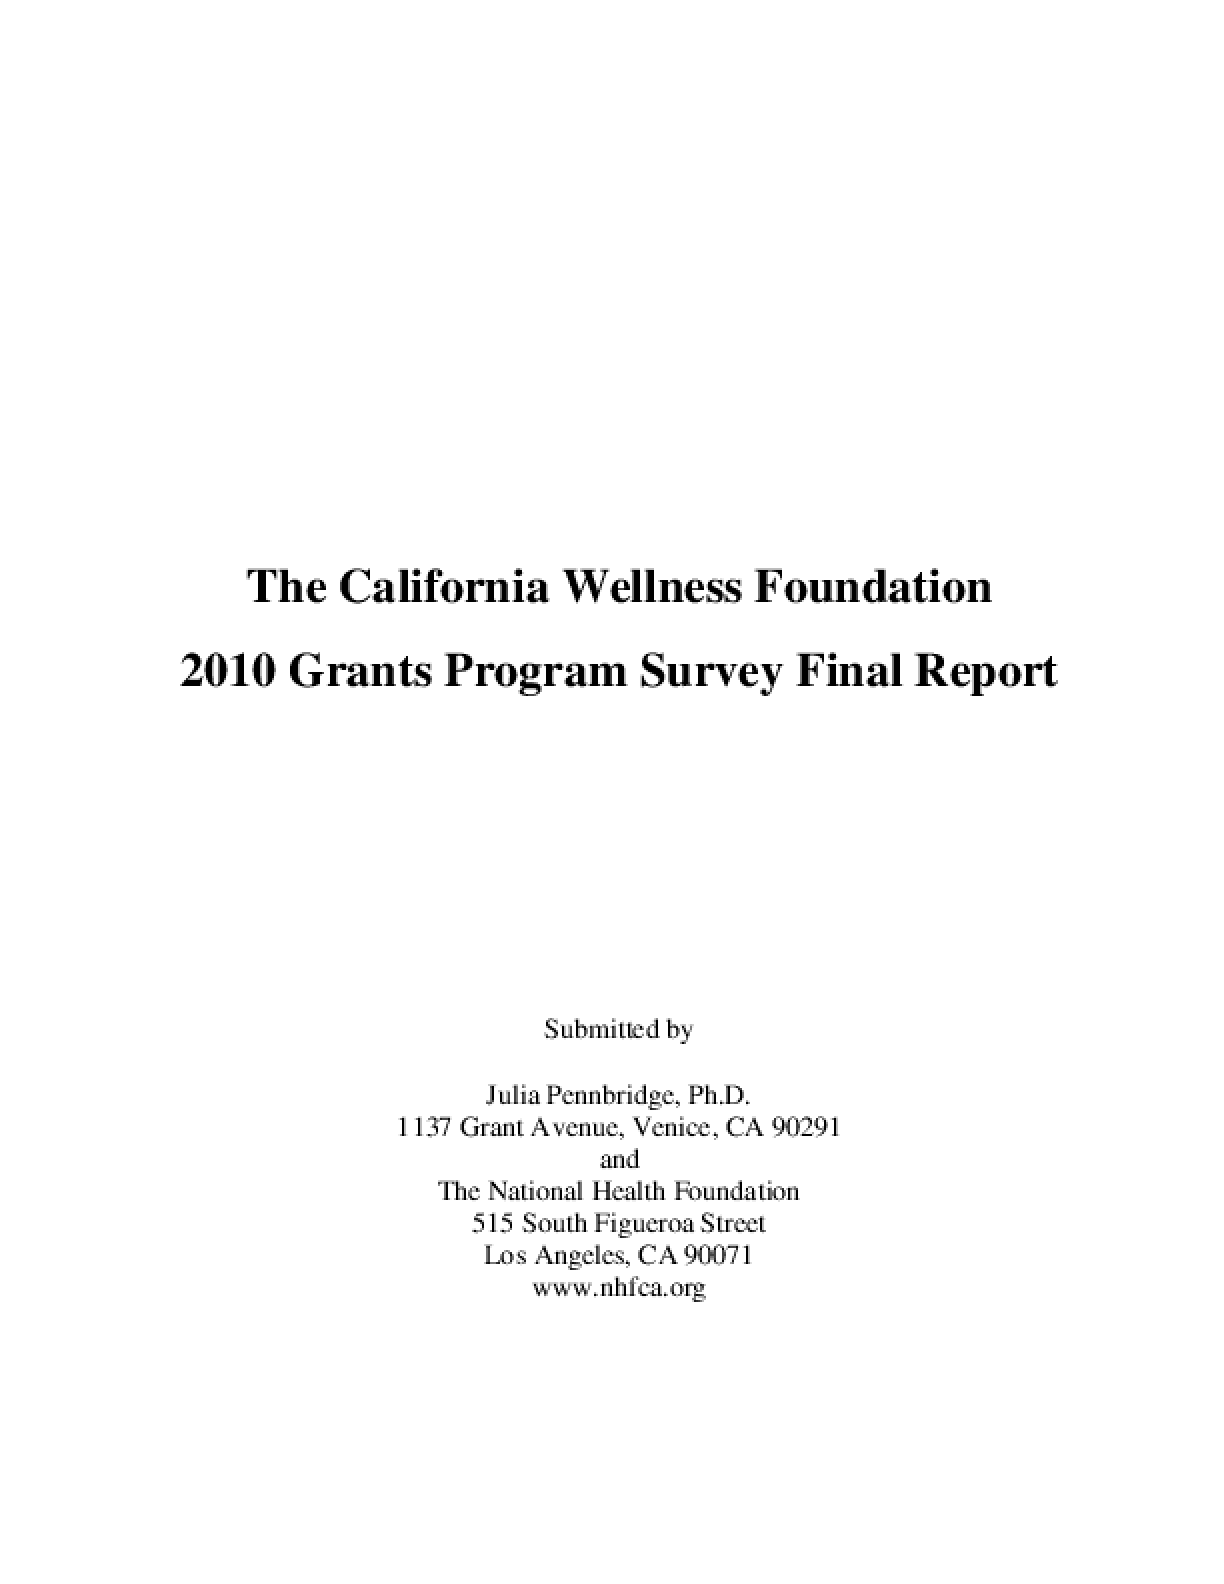 The California Wellness Foundation 2010 Grants Program Survey Final Report